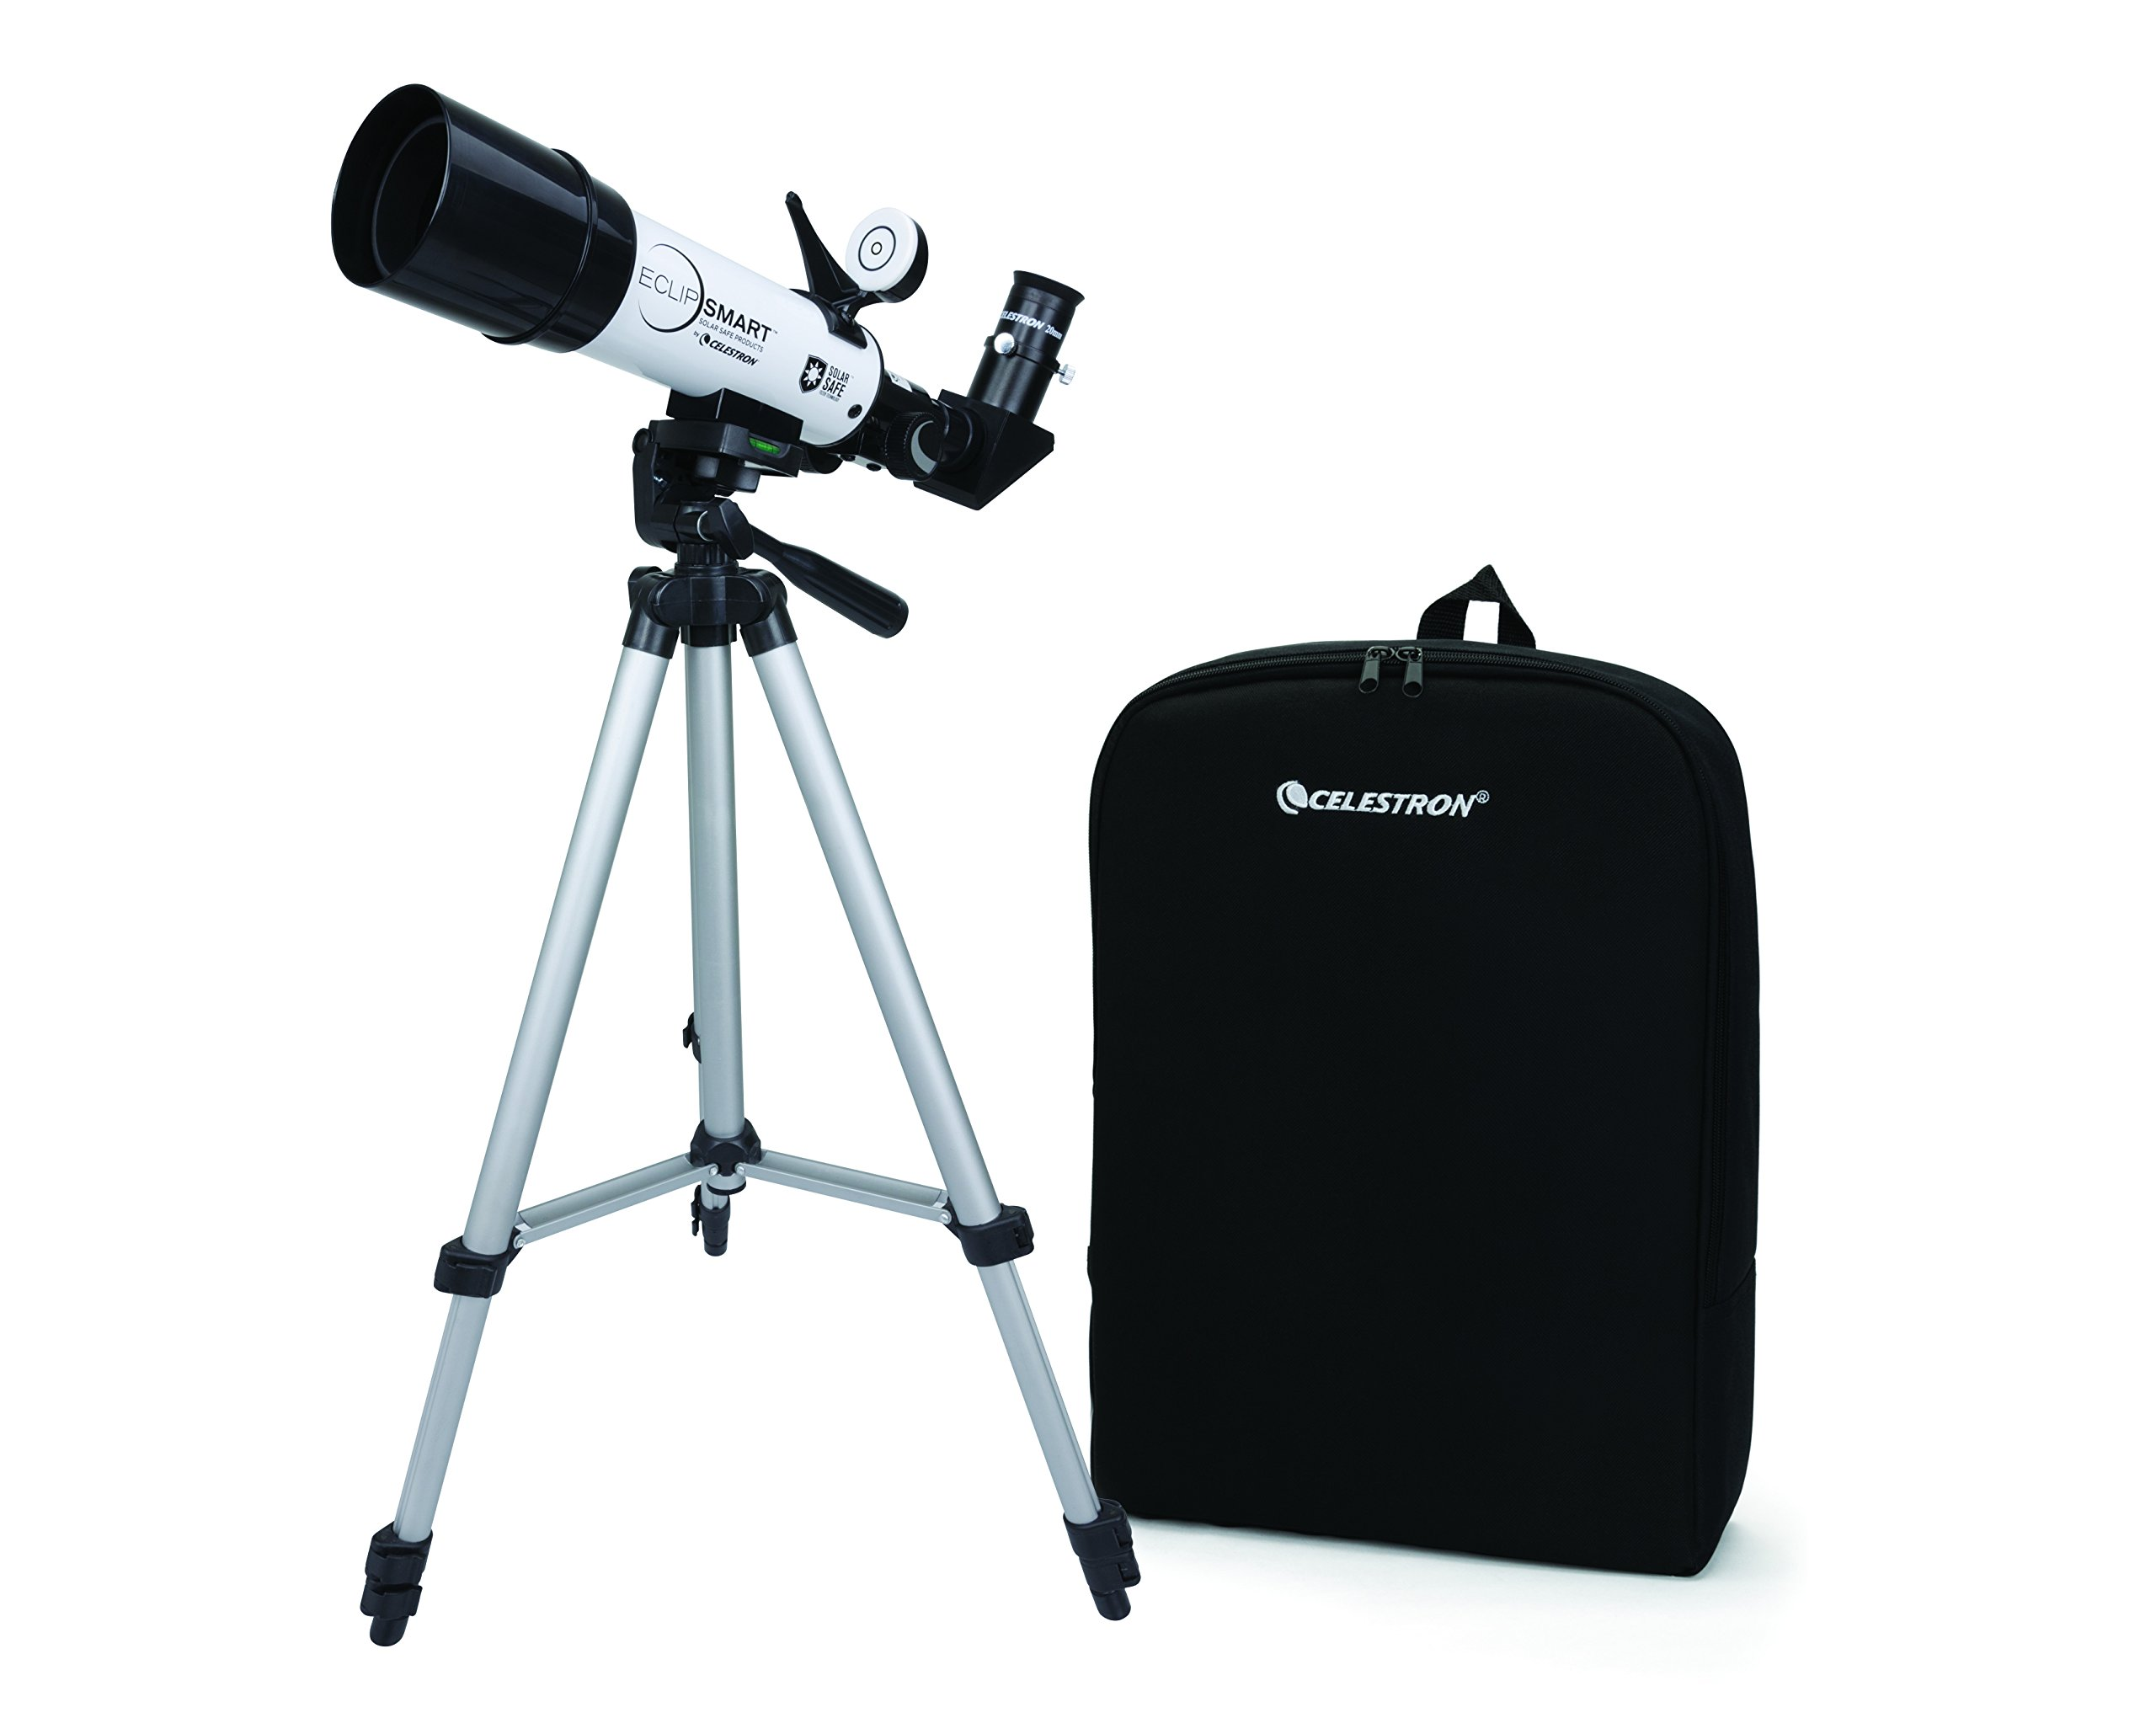 Celestron EclipSmart ISO Certified, 2017 North American Total Solar Eclipse Refracting Telescope, White (22060) by Celestron